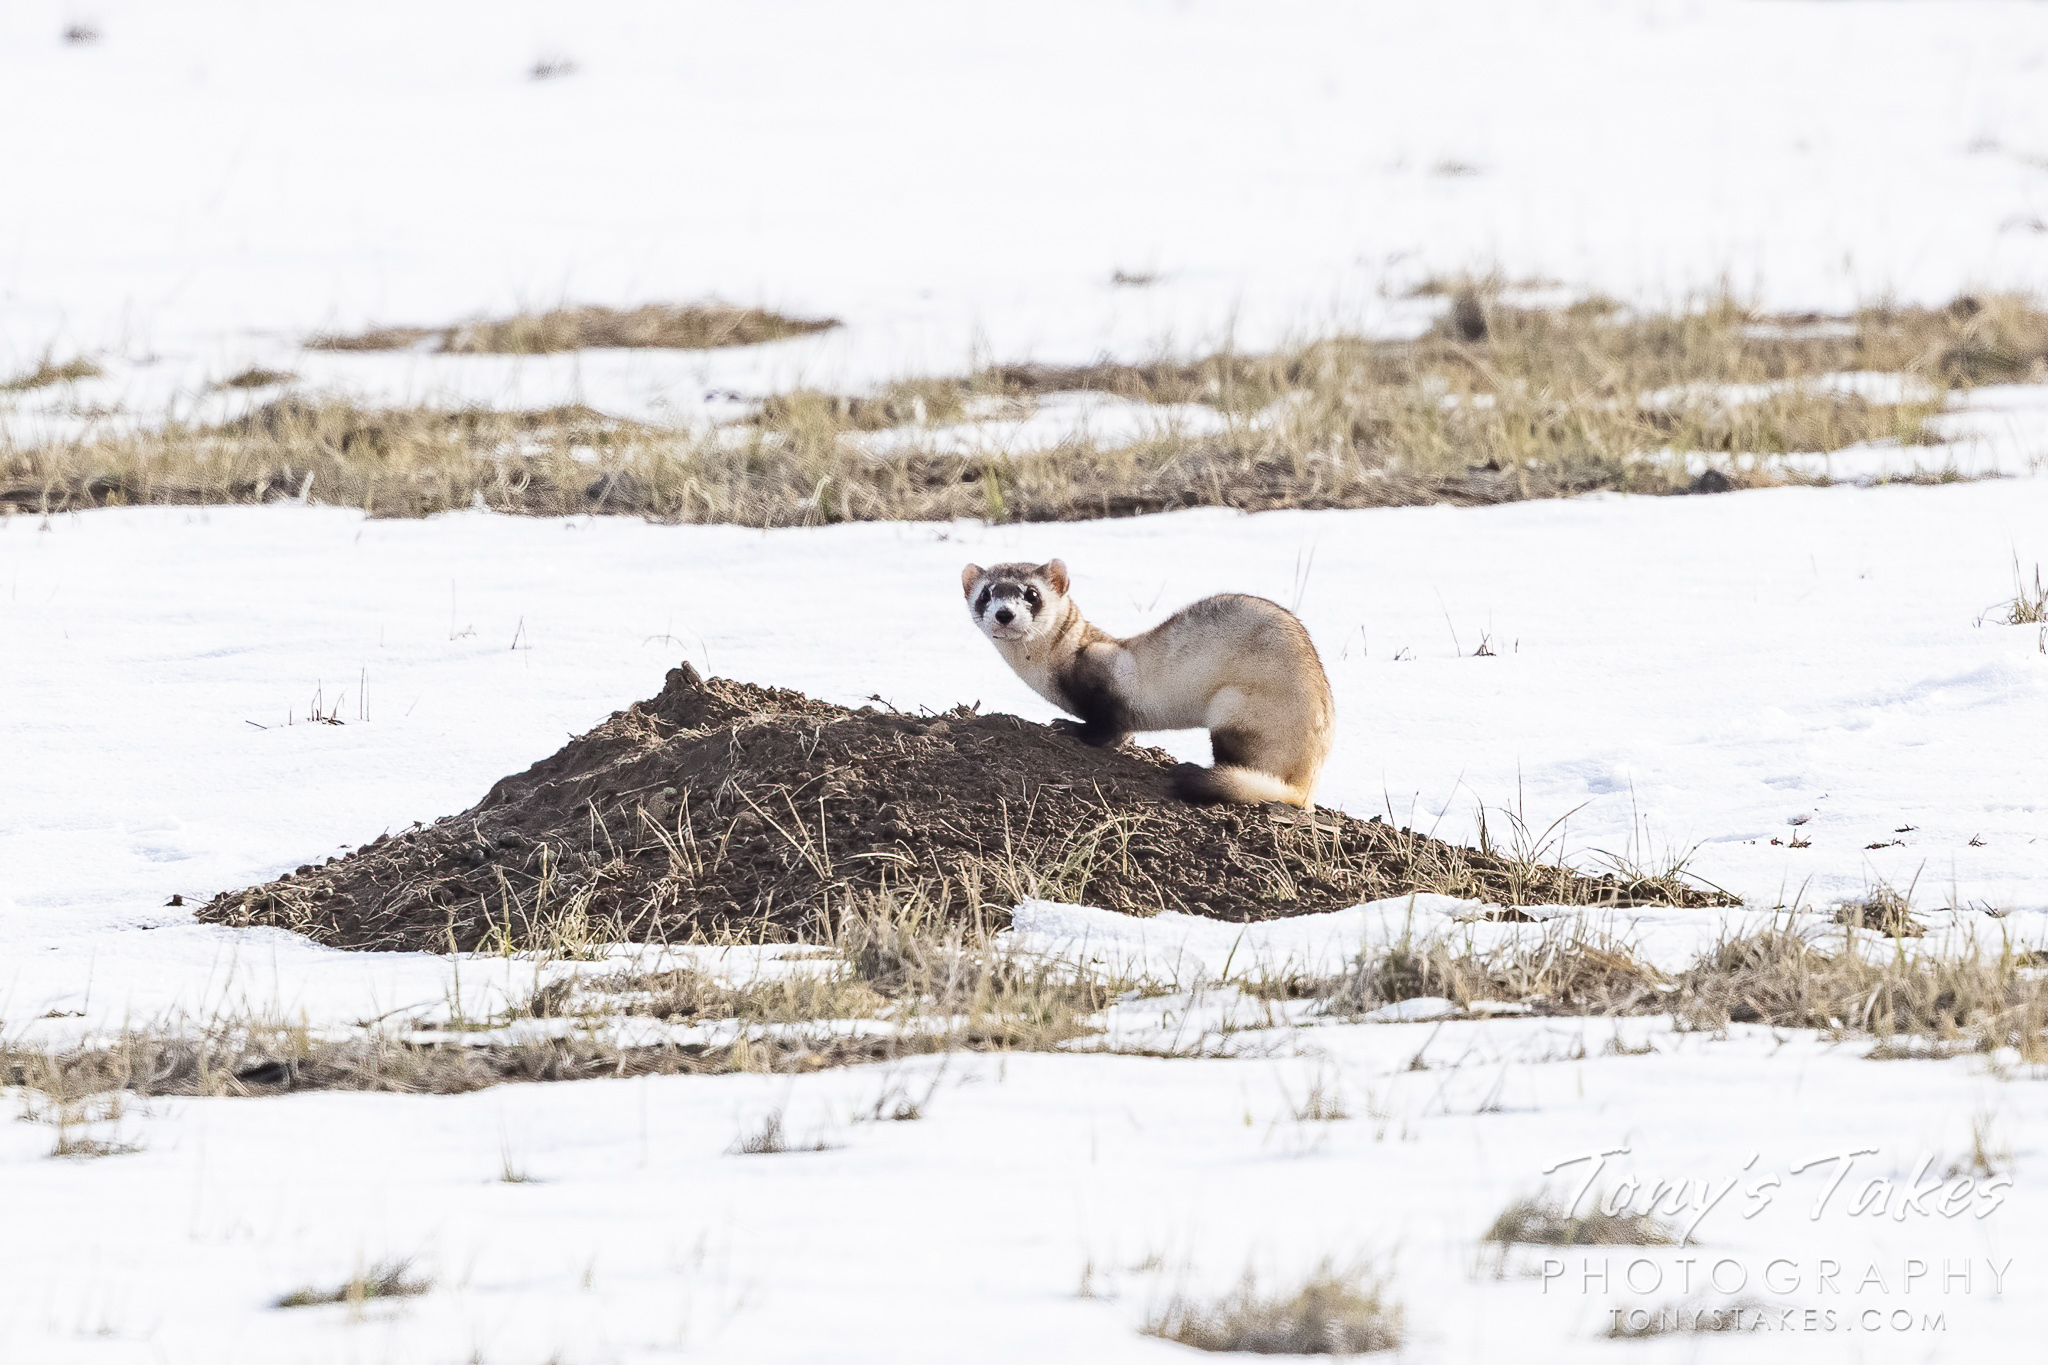 Black-footed ferret keeping watch